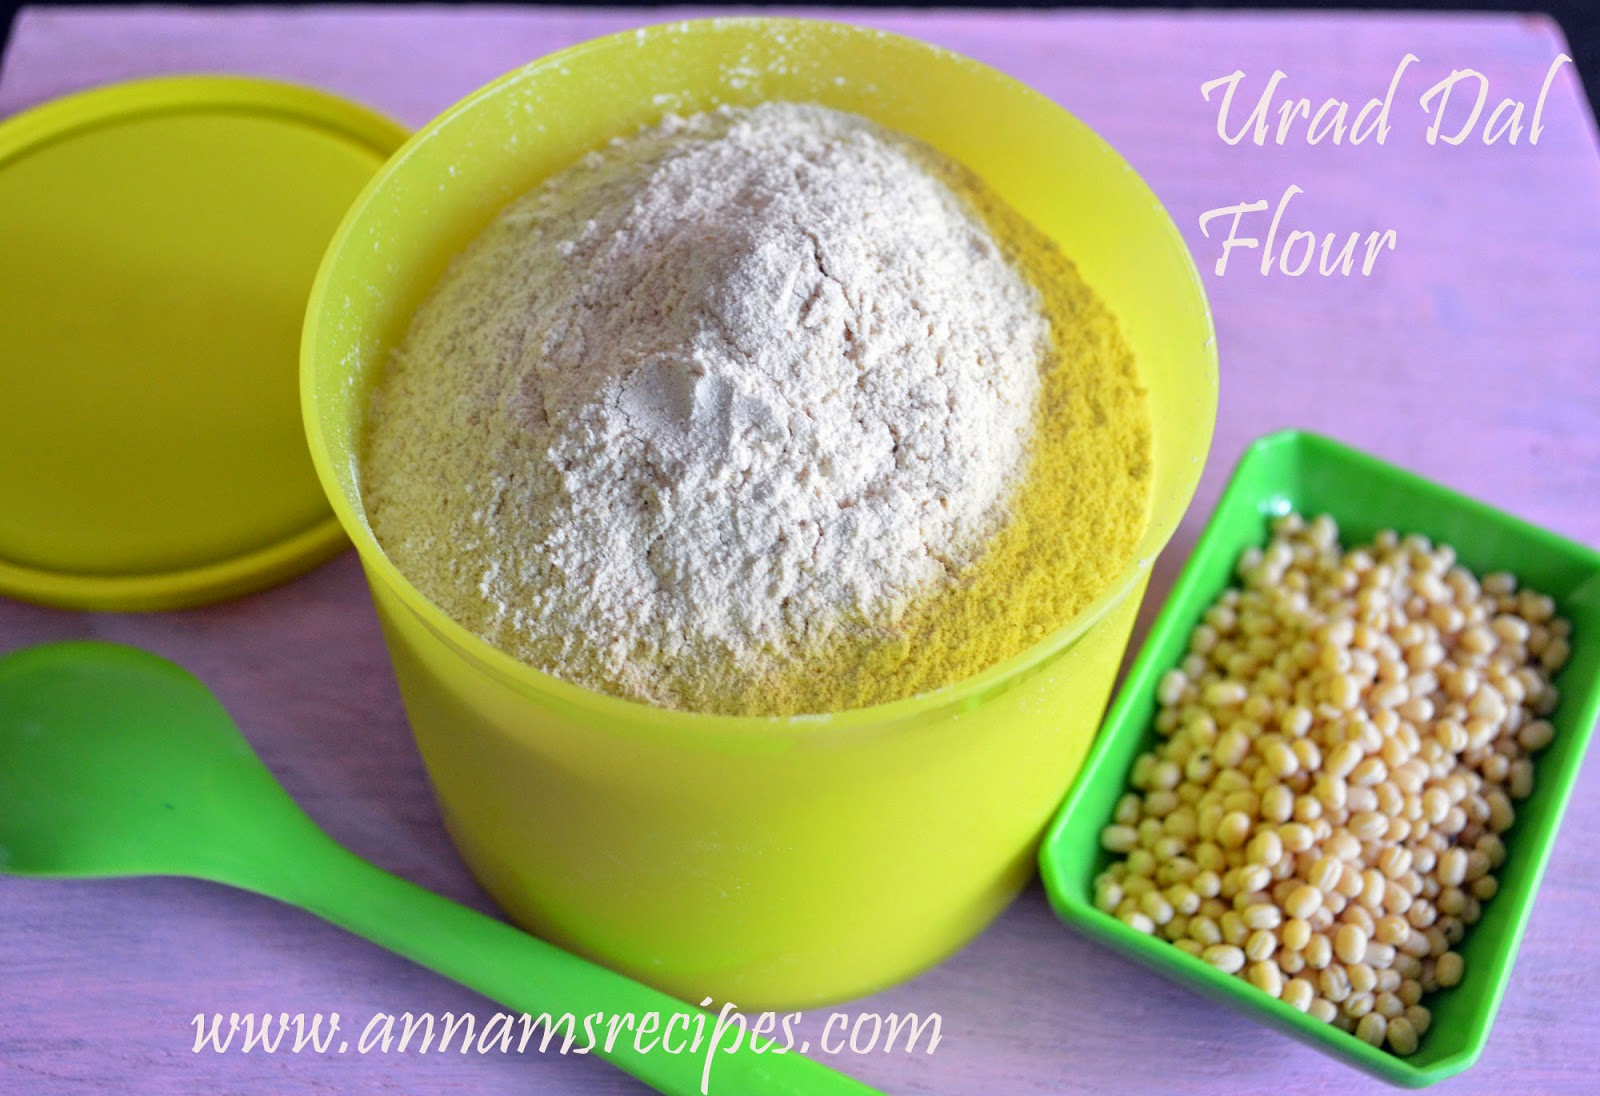 Home Made Urad Dal Flour